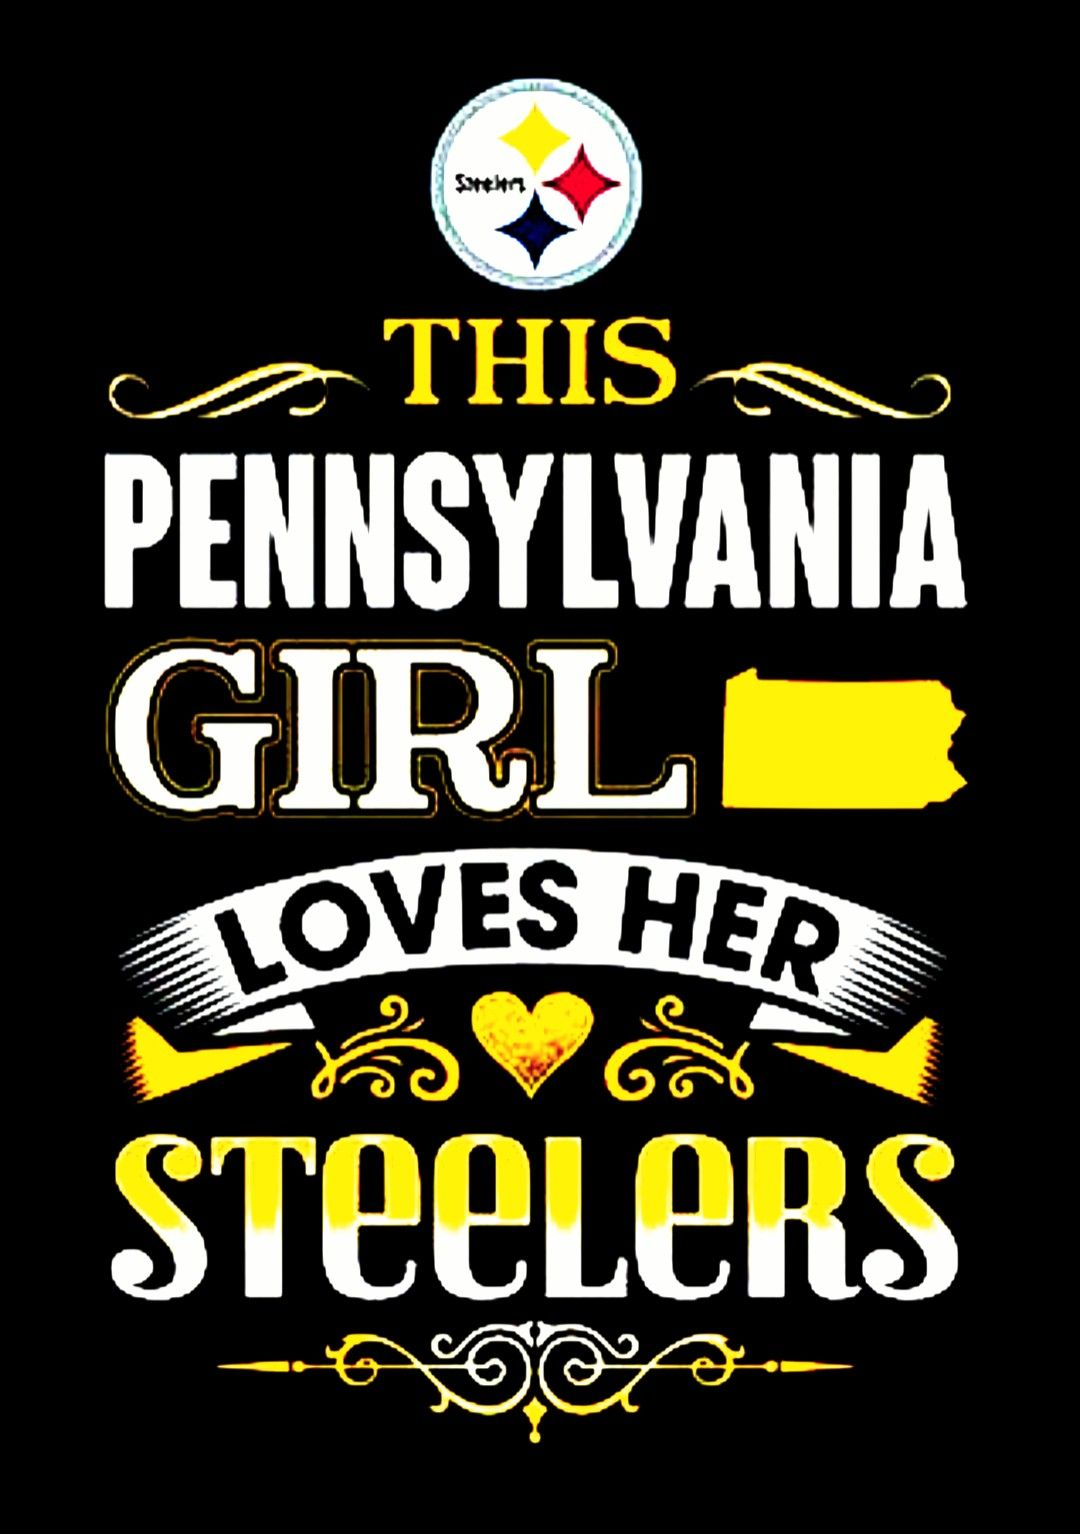 Pin by Pittsburgh Steelers Fanatics on Funny memes (With